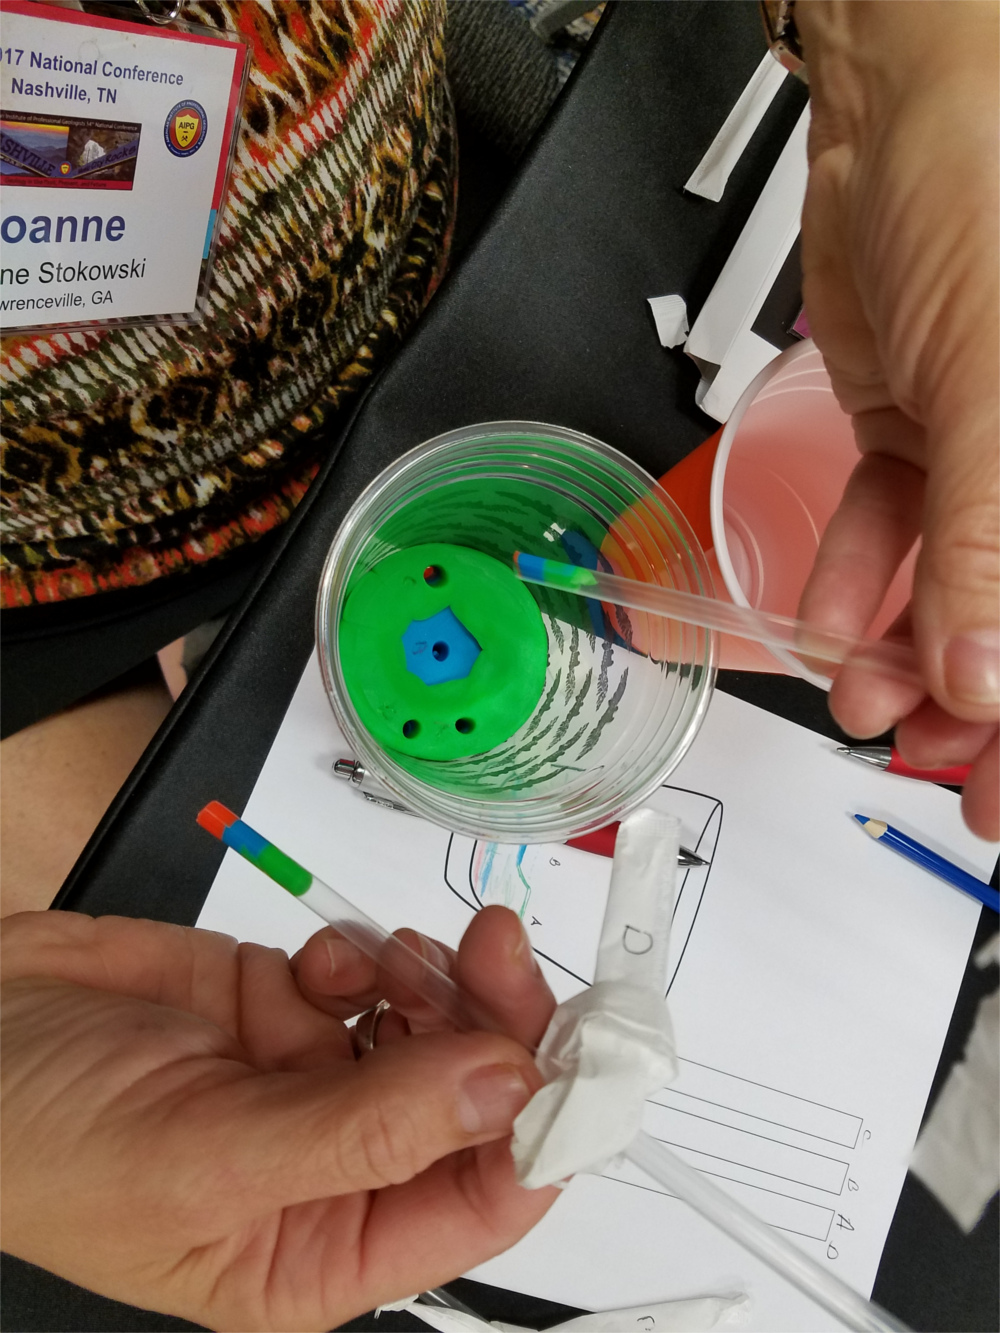 Top view of a cup with green and blue play-doh in it. Two straws have punctured the cup, and are showing different distributions of the playd-oh depending on where the sampling was done.